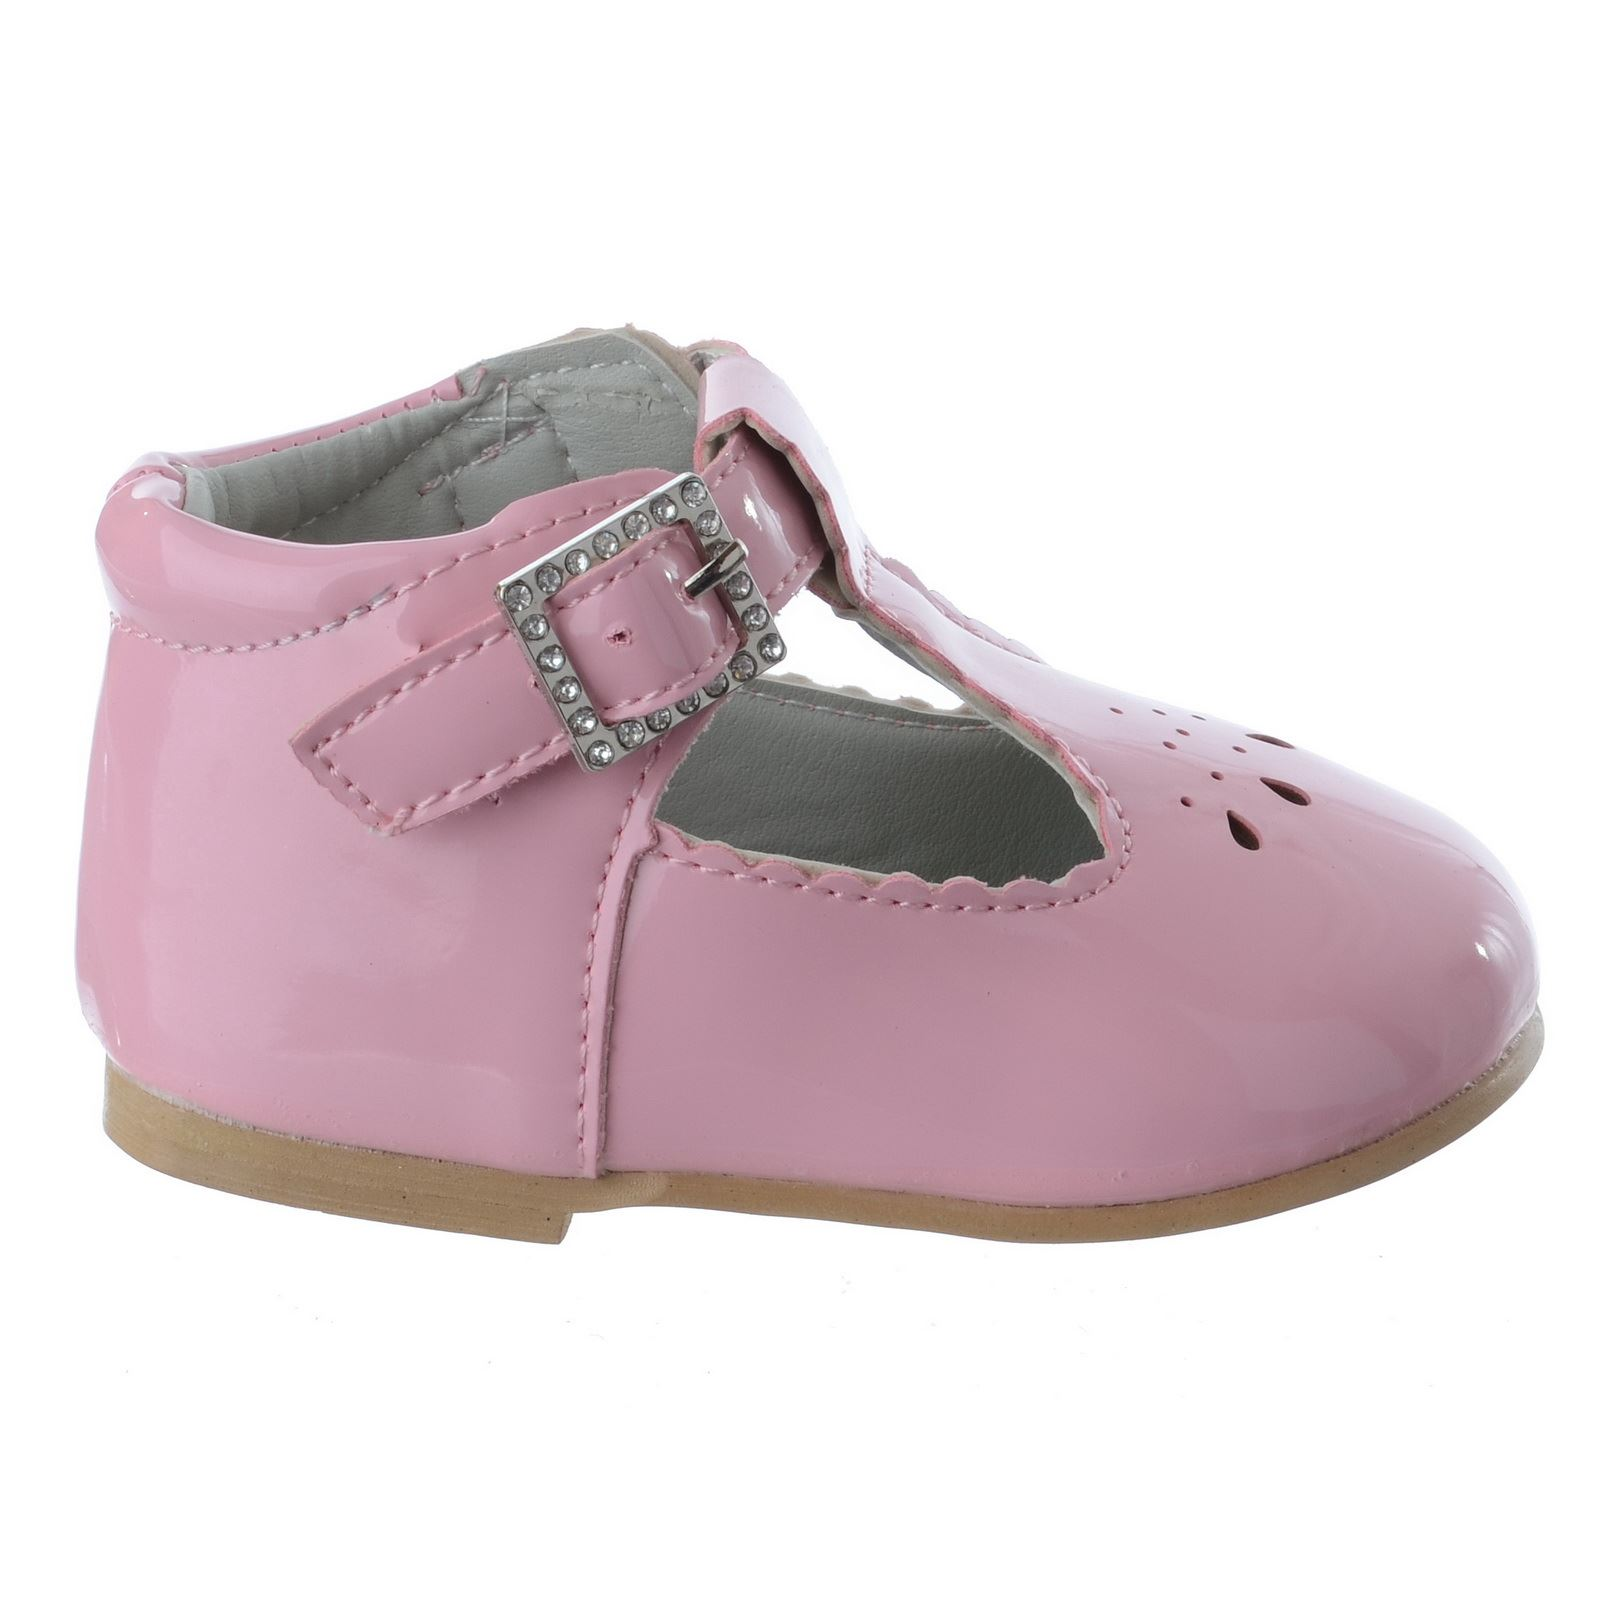 BABY GIRLS TODDLER T BAR DIAMANTE BUCKLE FLAT PARTY CHRISTENING SHOES SIZE 3-8